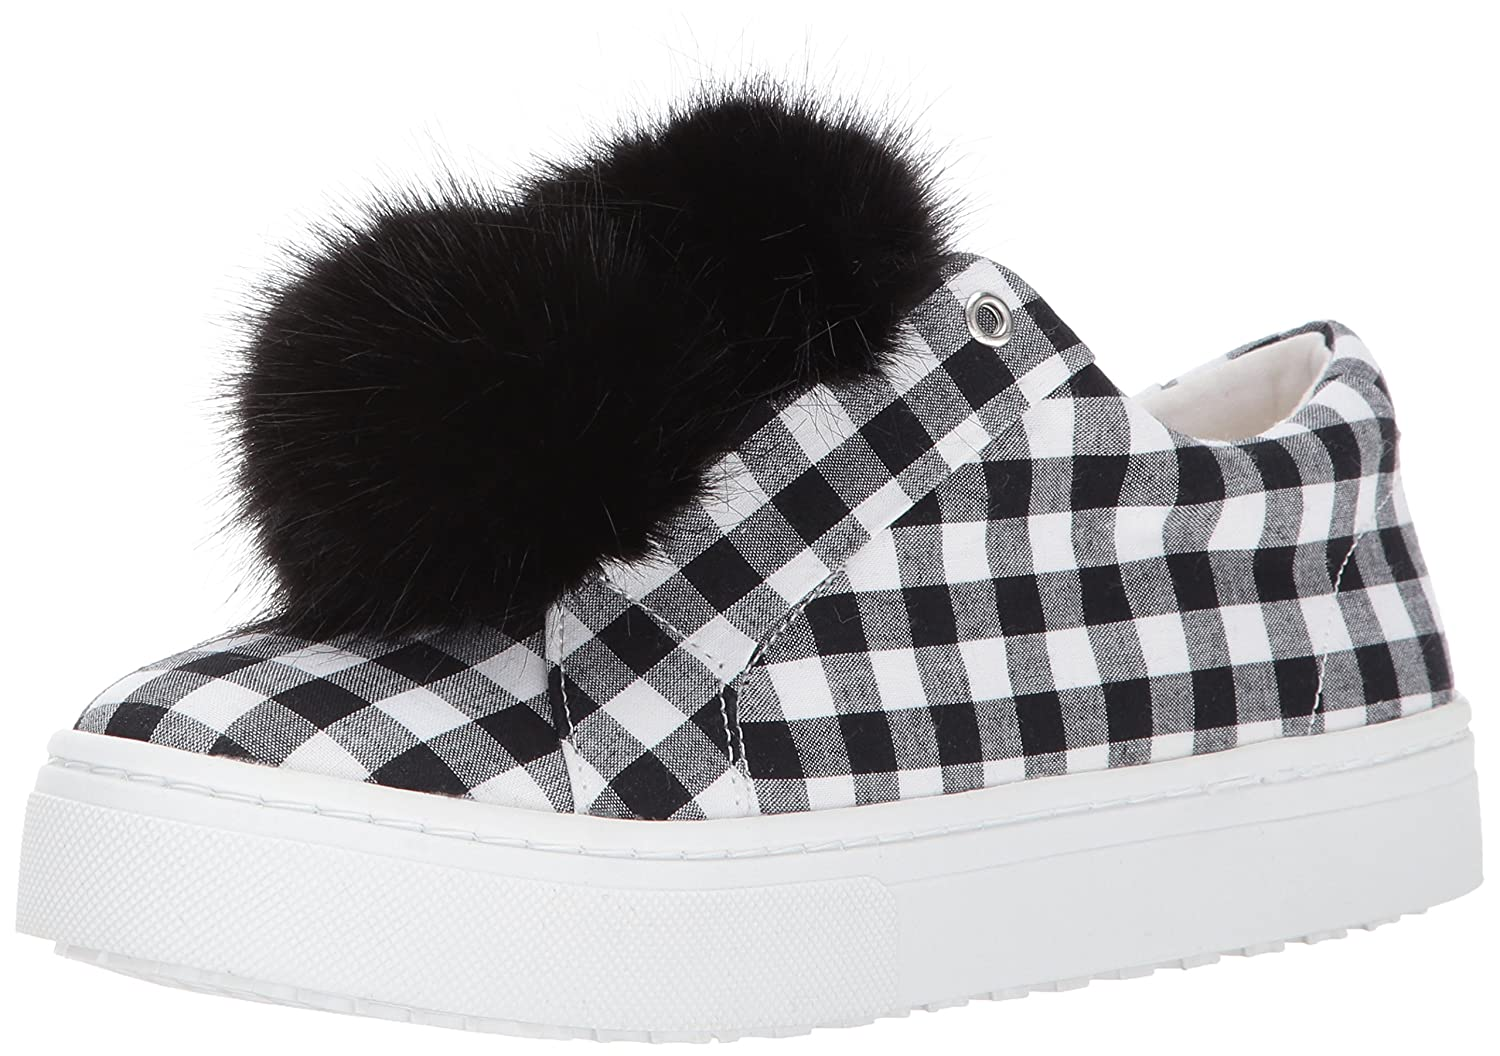 Sam Edelman Women's Leya Fashion Sneaker B06XC3K3CX 10 B(M) US|Black/White Gingham Print